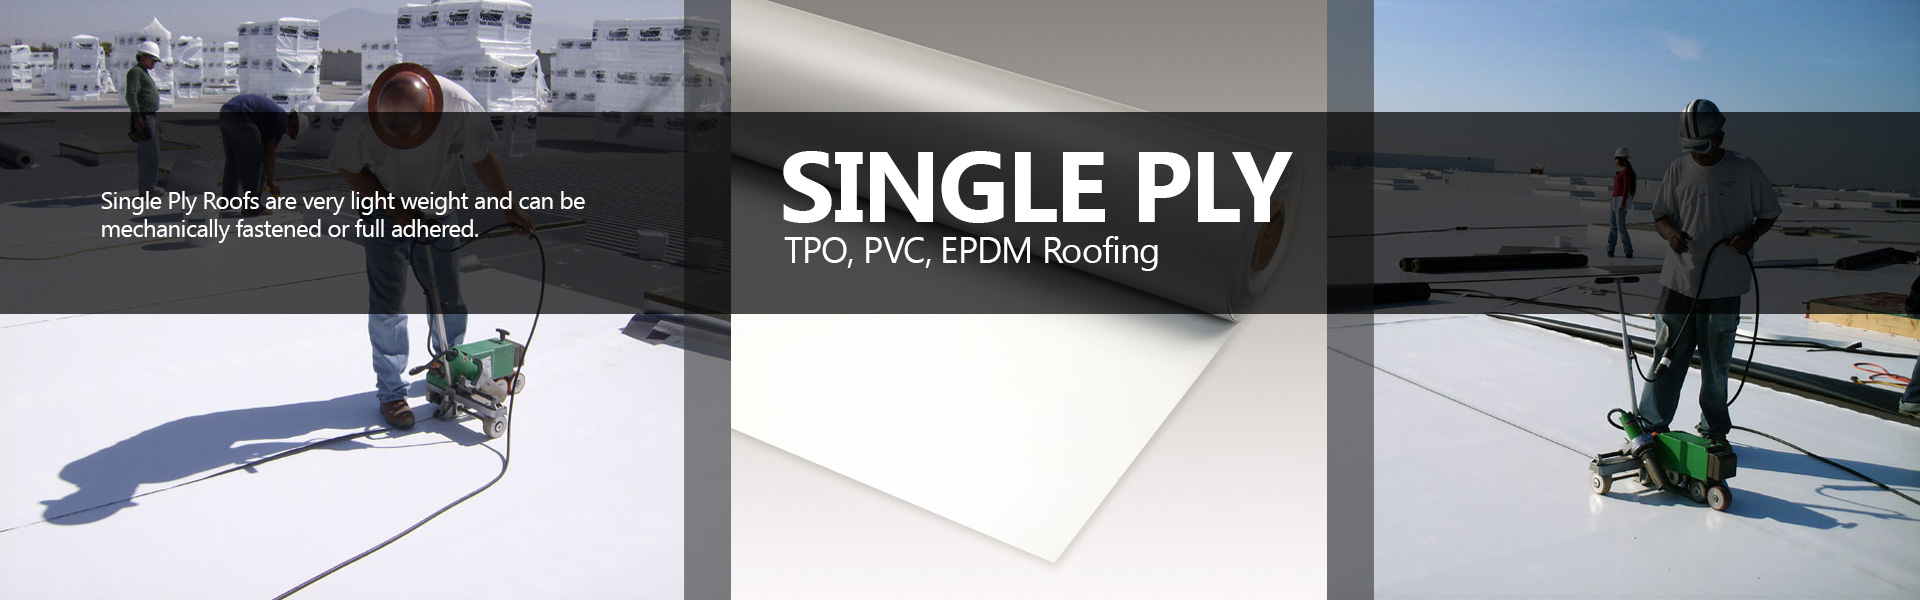 single-ply-roofing-1